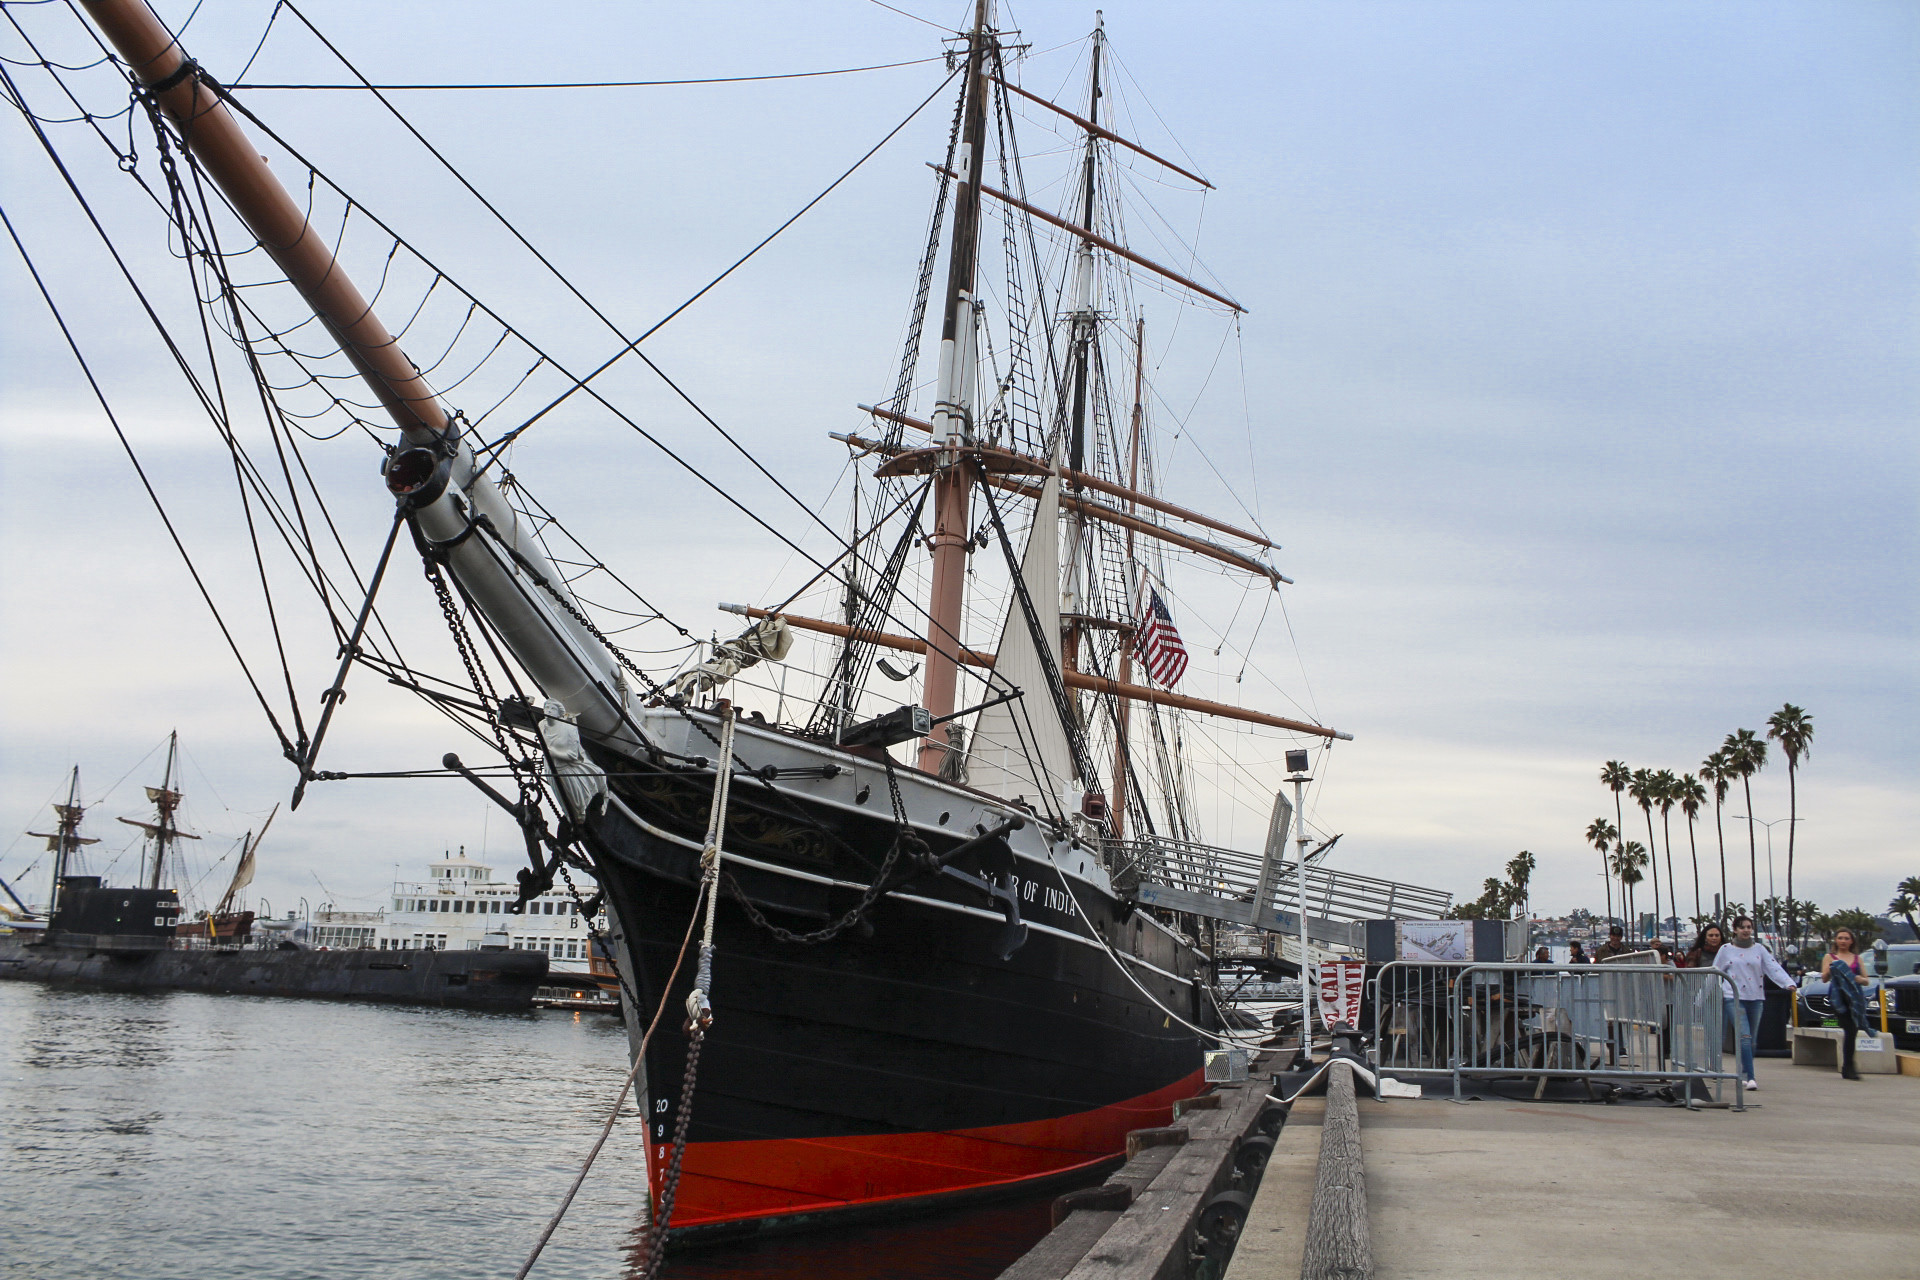 The Star of India at the Embarcadero in San Diego has a storied past that includes mutiny.